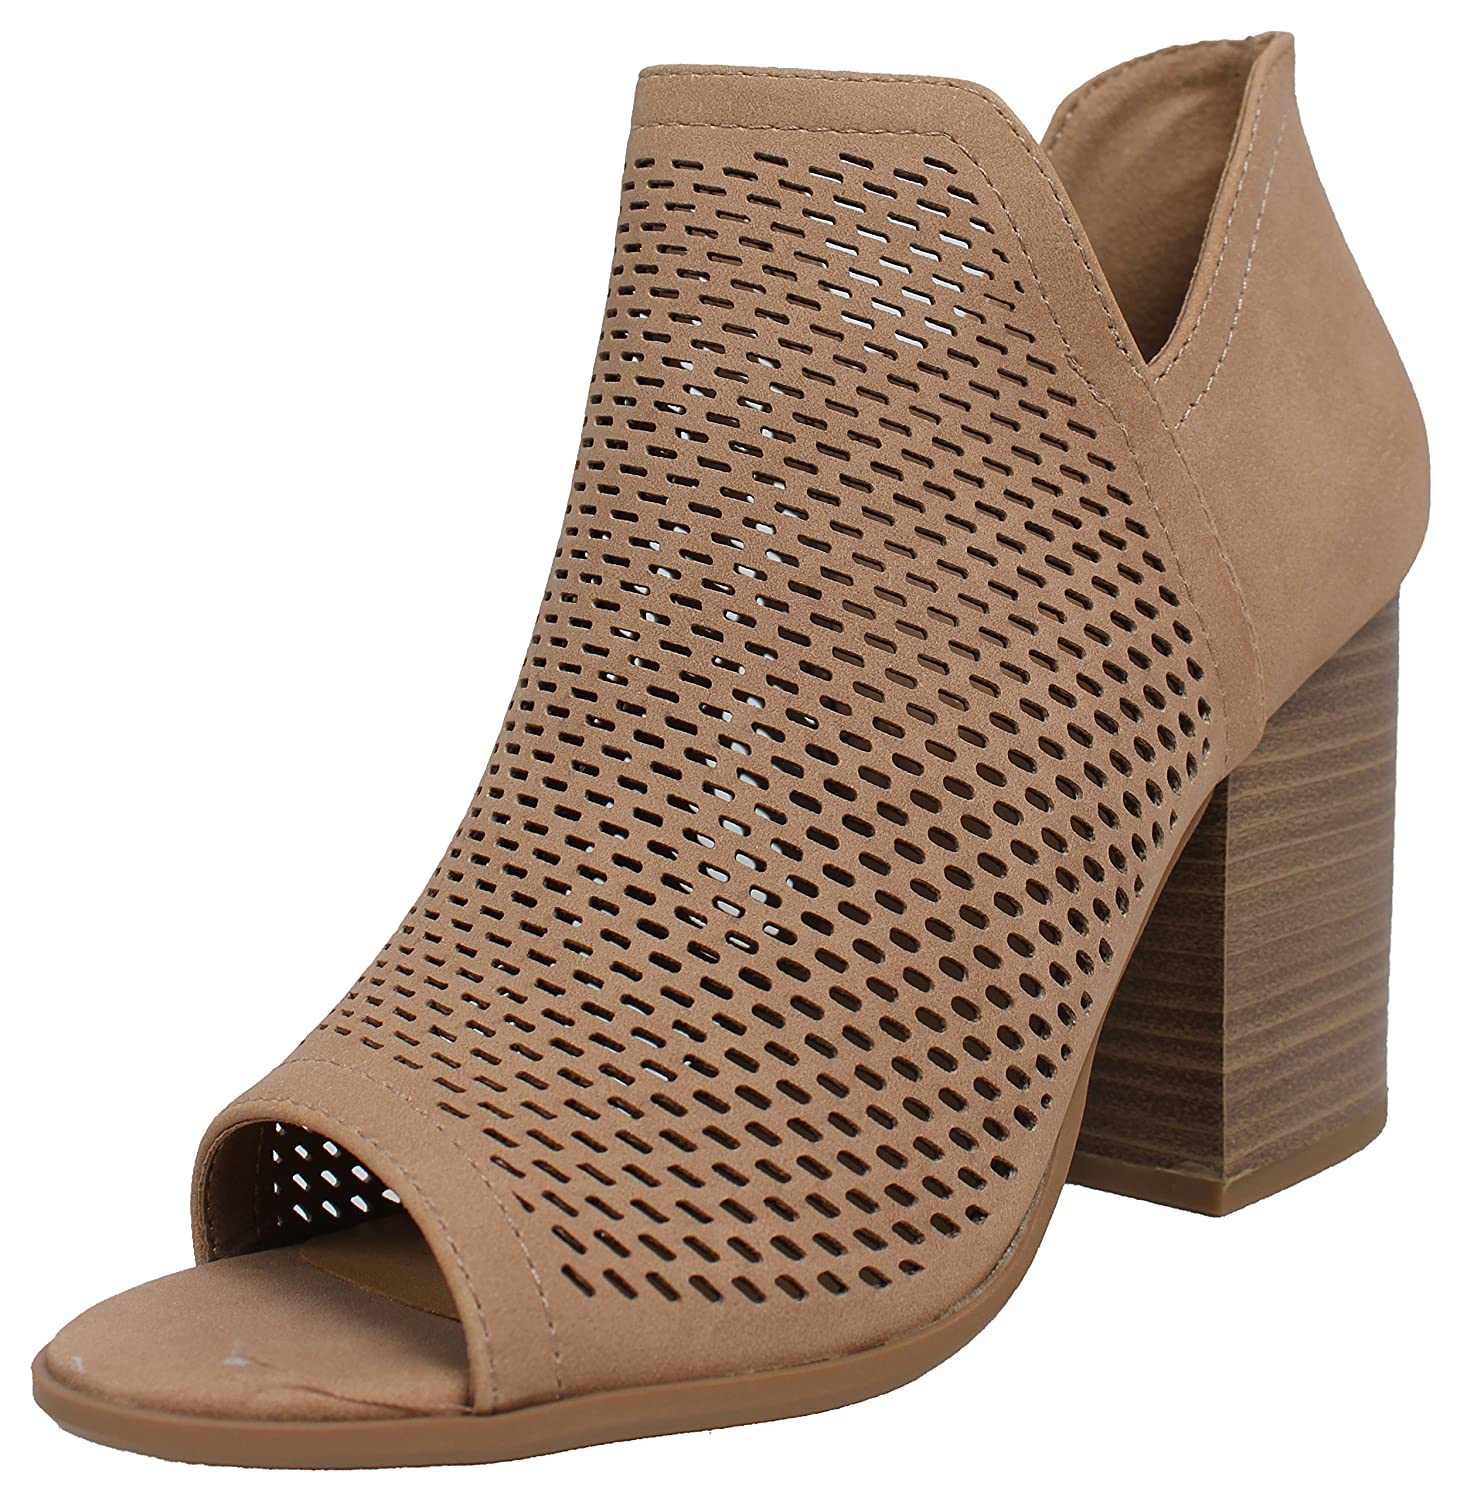 Soda Women's Open Toe Perforated Stacked Block Heel Ankle Bootie B078J7Z3Z6 9 B(M) US|Natural